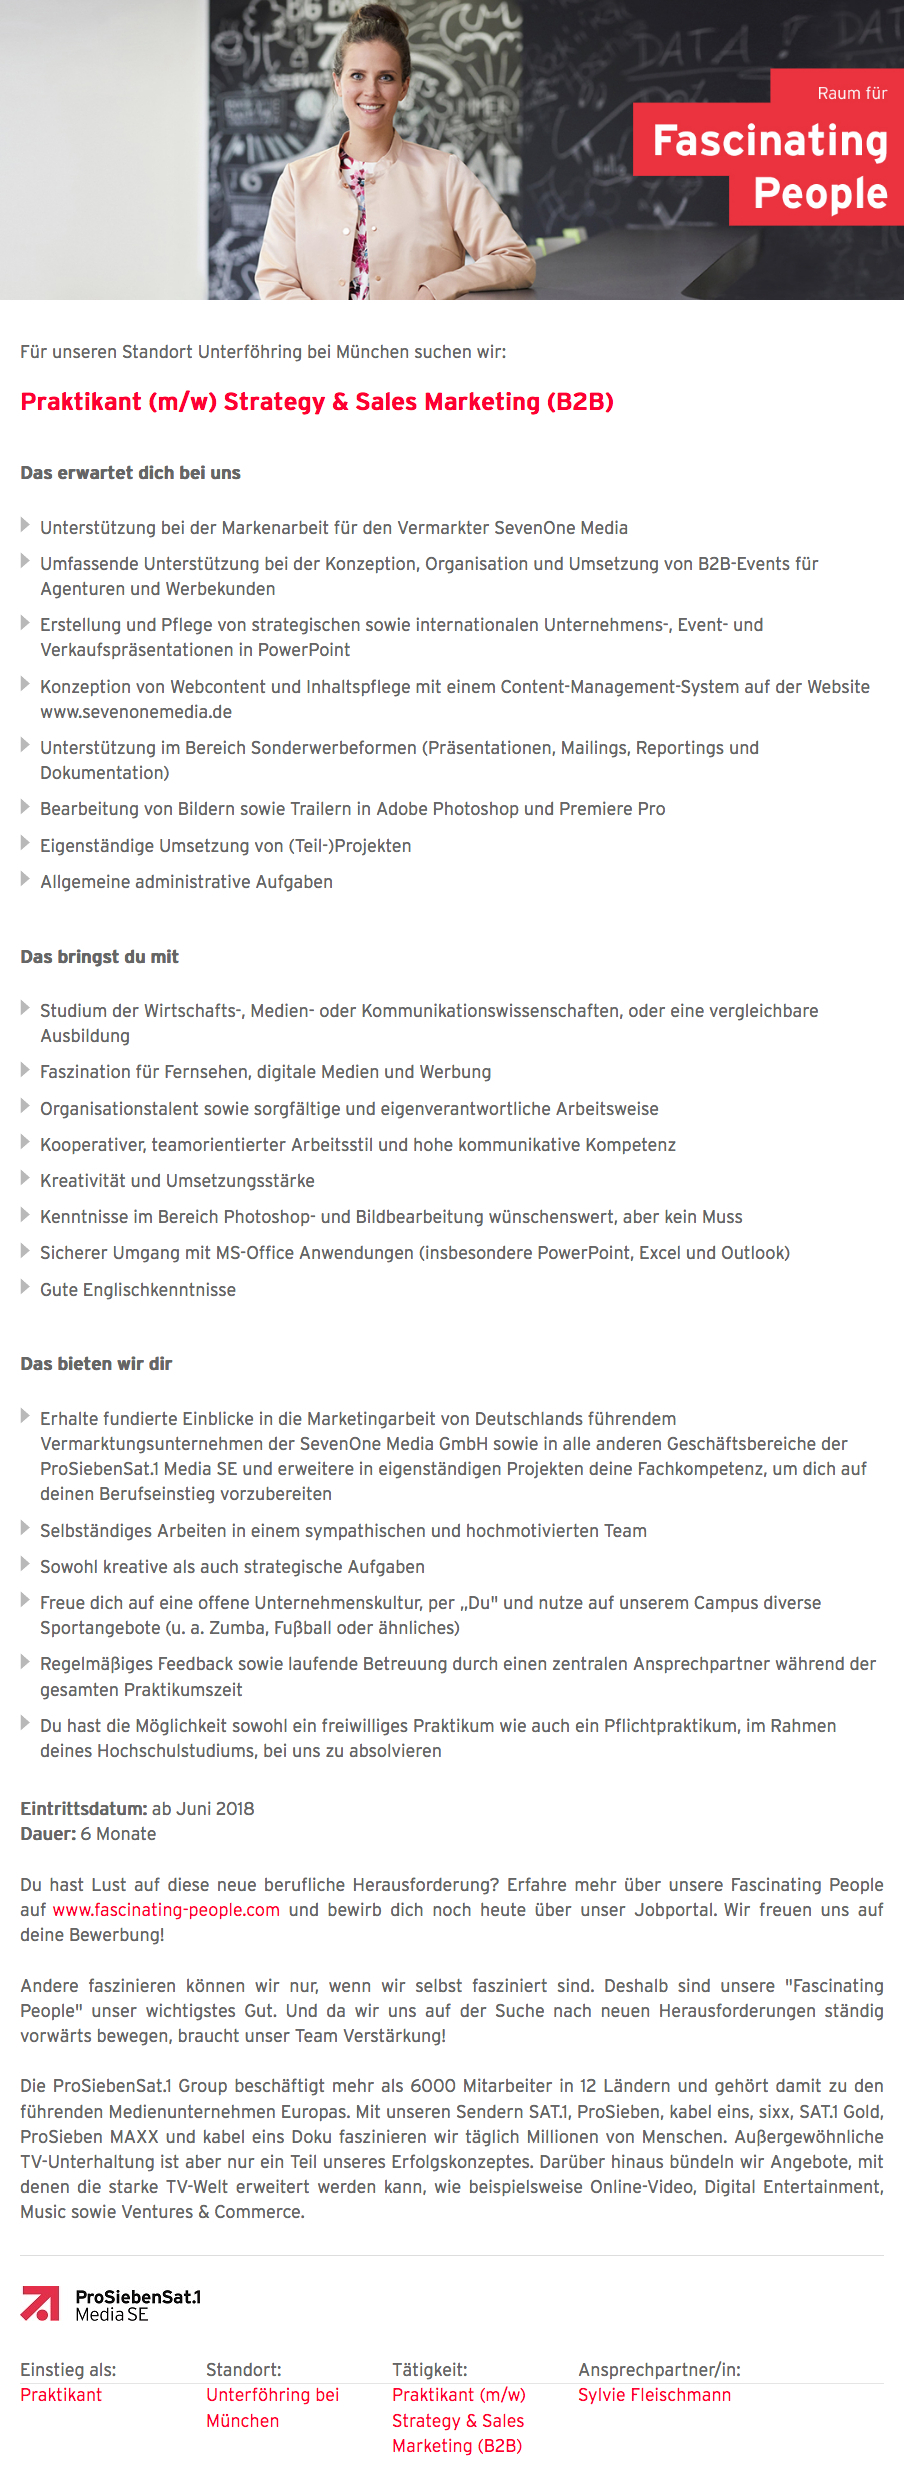 Praktikant (m/w) Strategy & Sales Marketing (B2B)